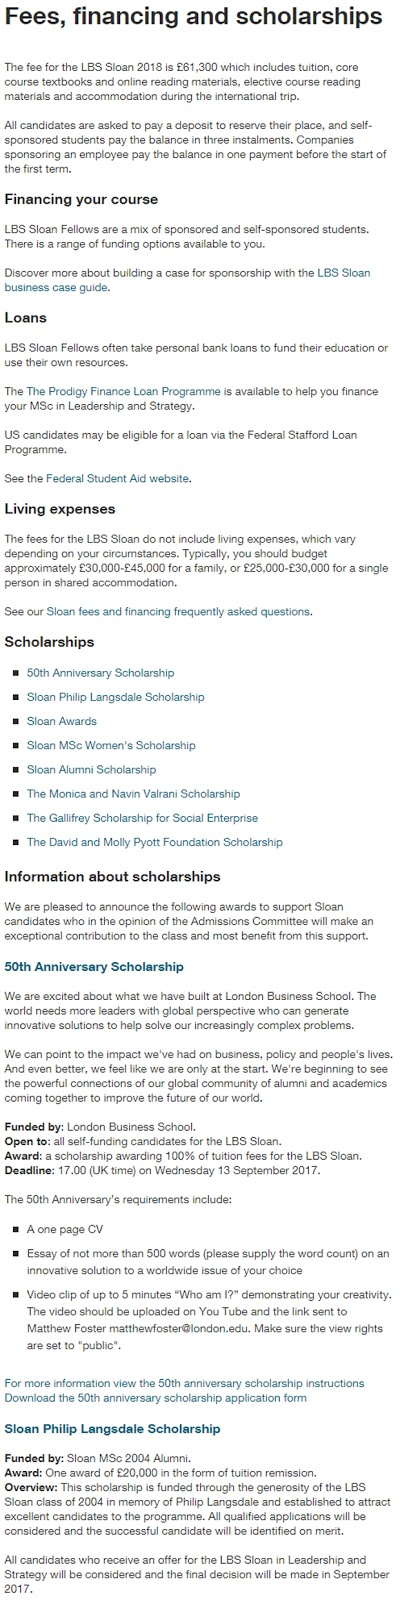 LBS 50th Anniversary Scholarships for International Students in UK 2017